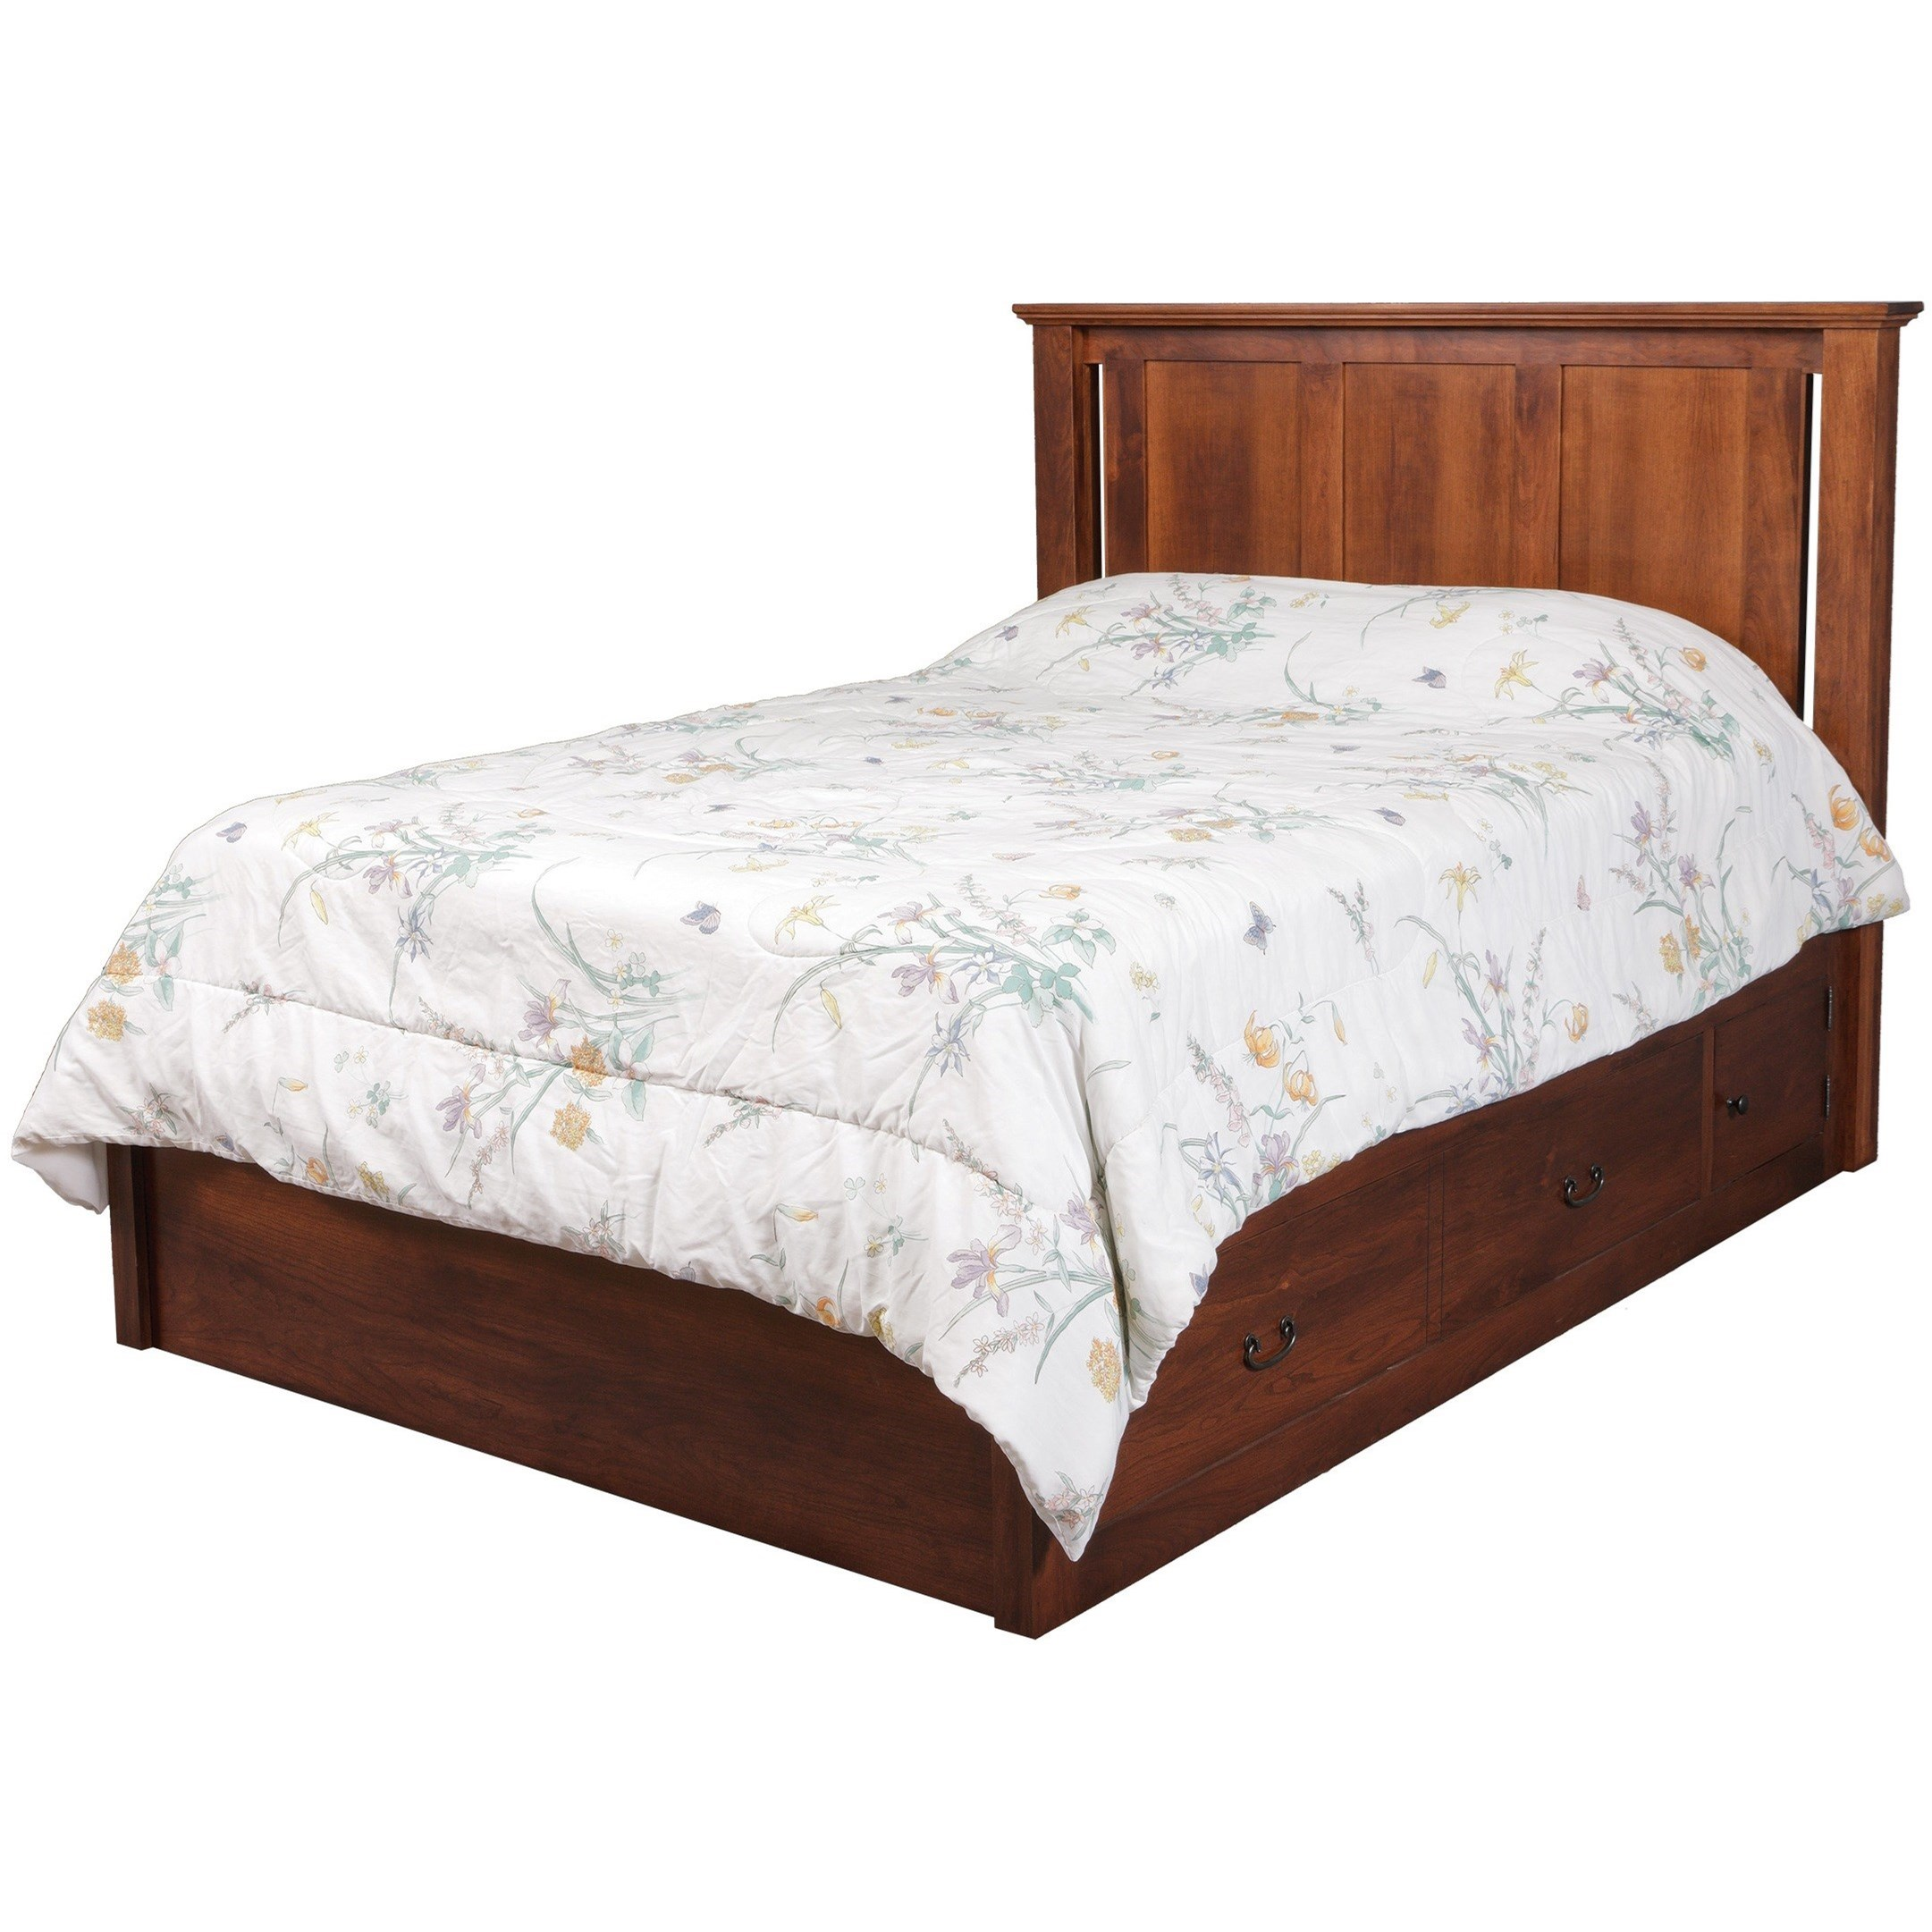 Queen Pedestal Bed